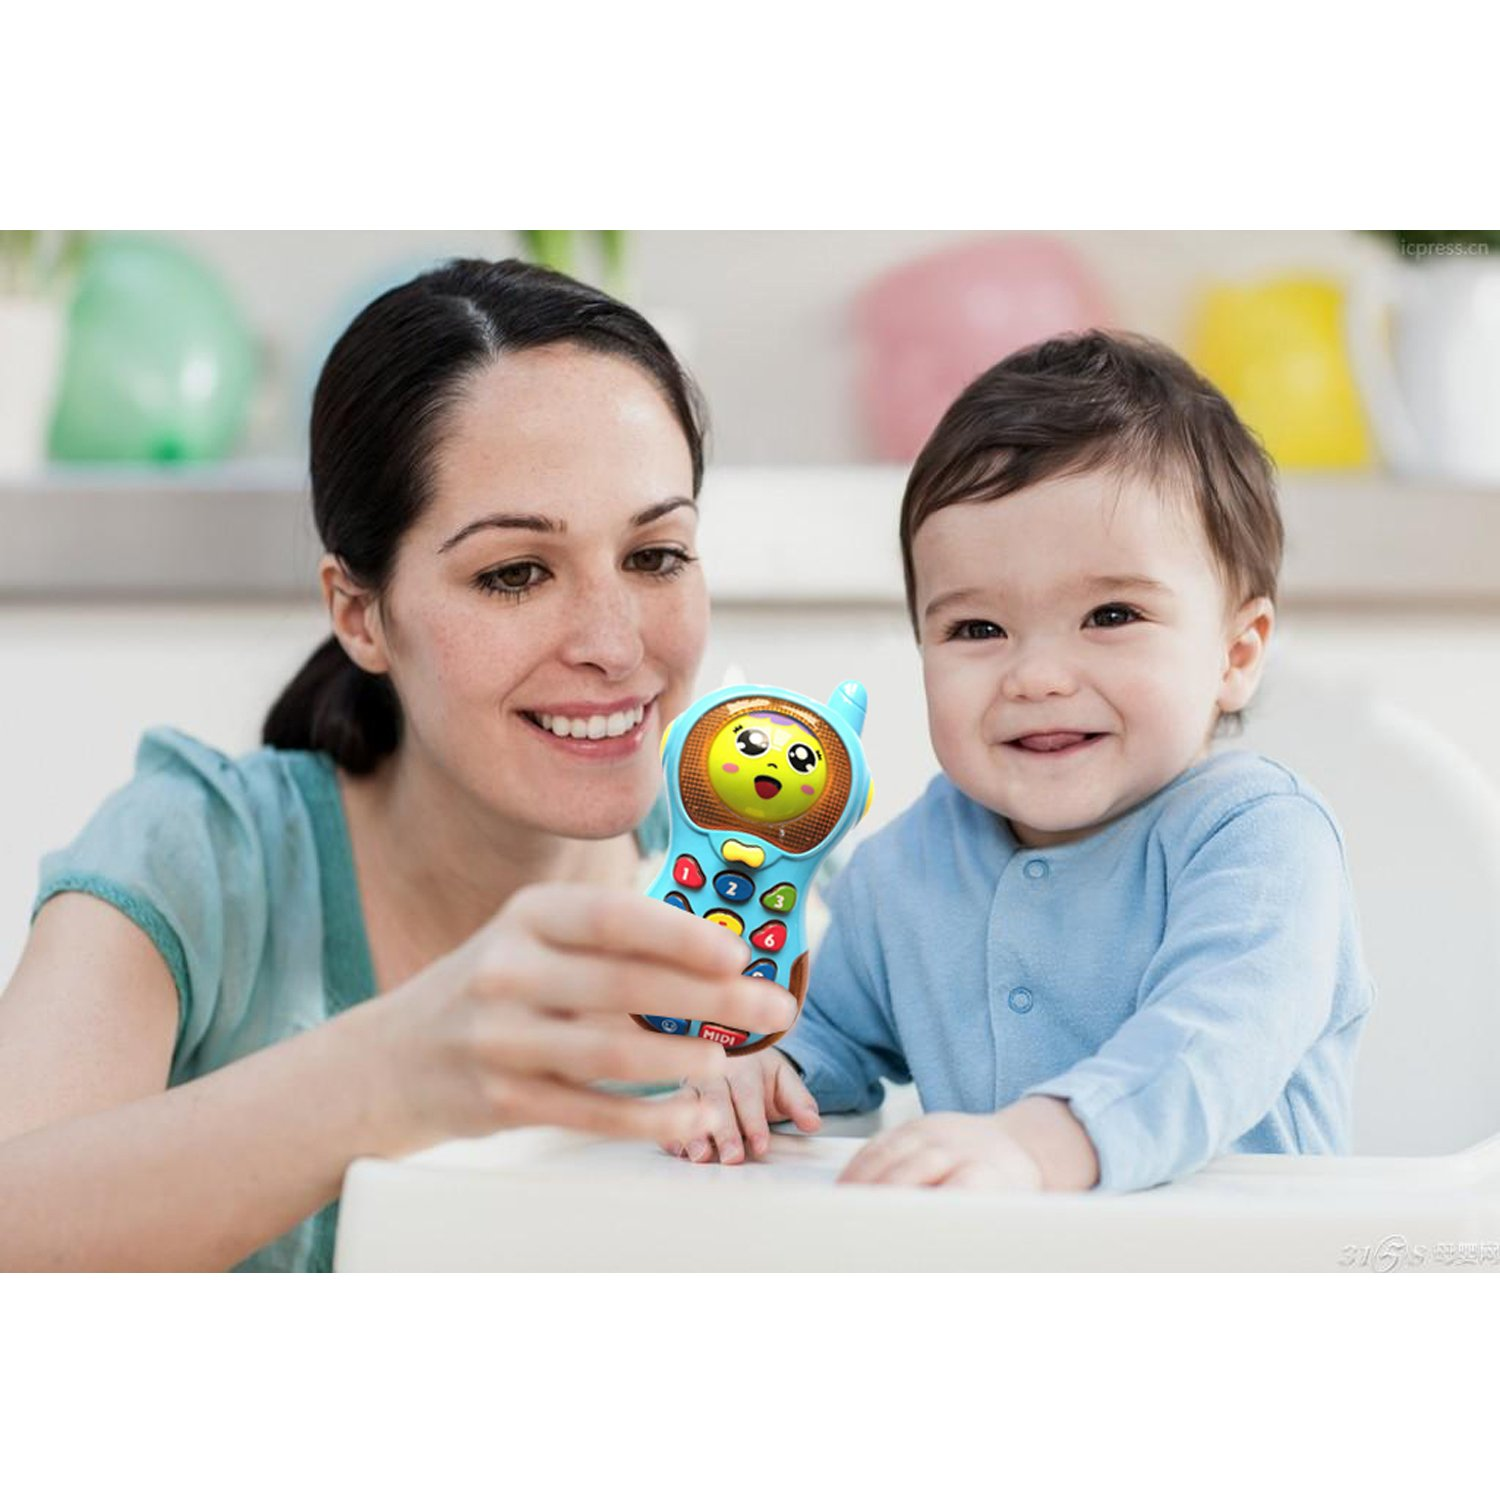 SUGOO Toys Phone For 6 Months Old Boys Baby Girl Toy 1 Year